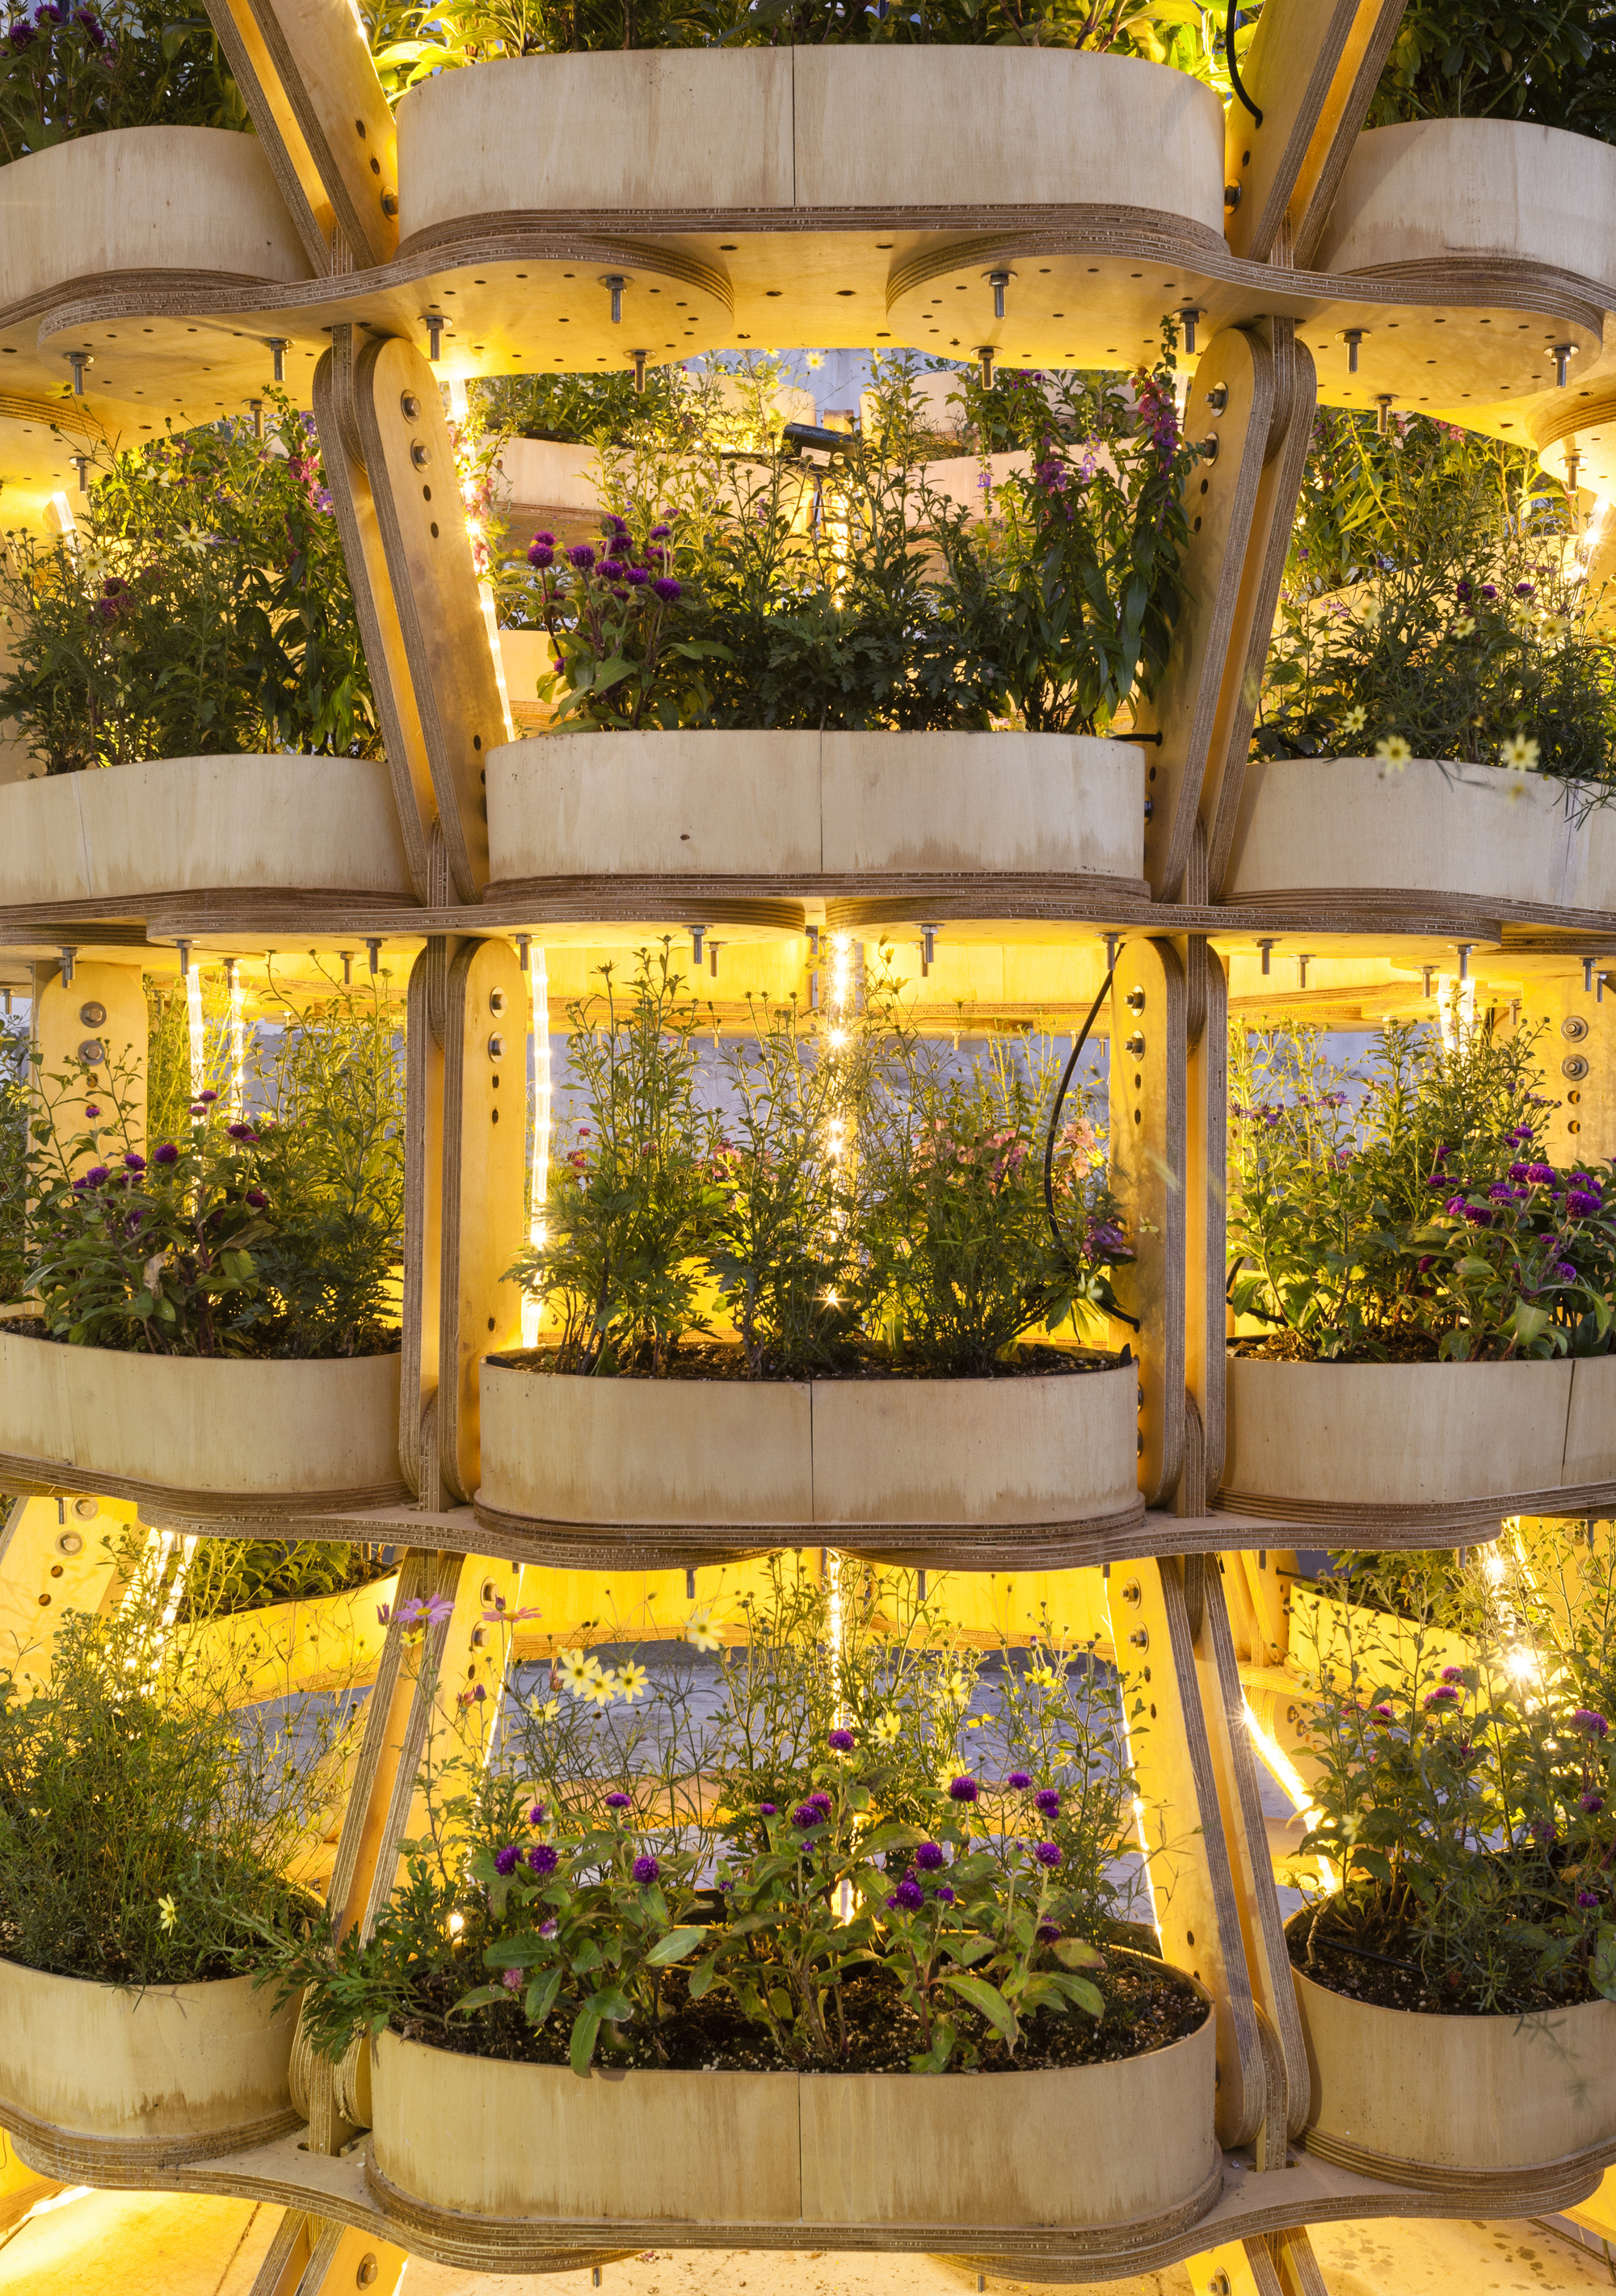 Gallery of Open Source Plan for a Modular Urban Gardening Structure ...